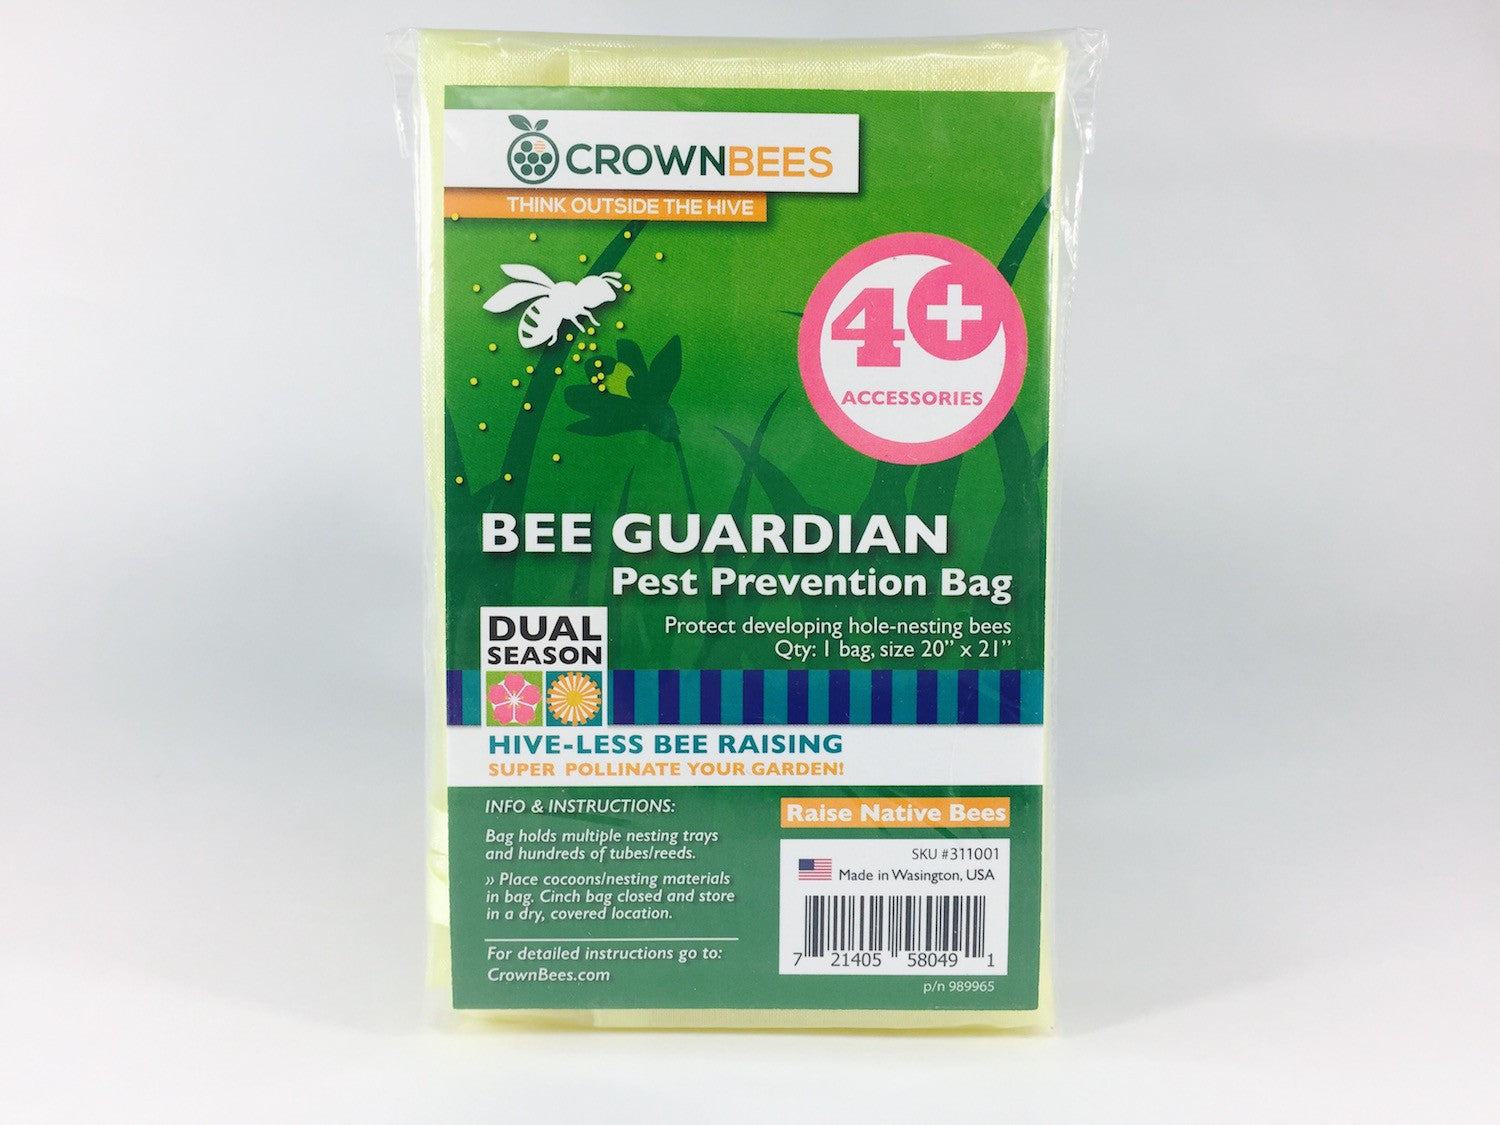 crown bees beeguardian cocoon bag for native bees canadian pet